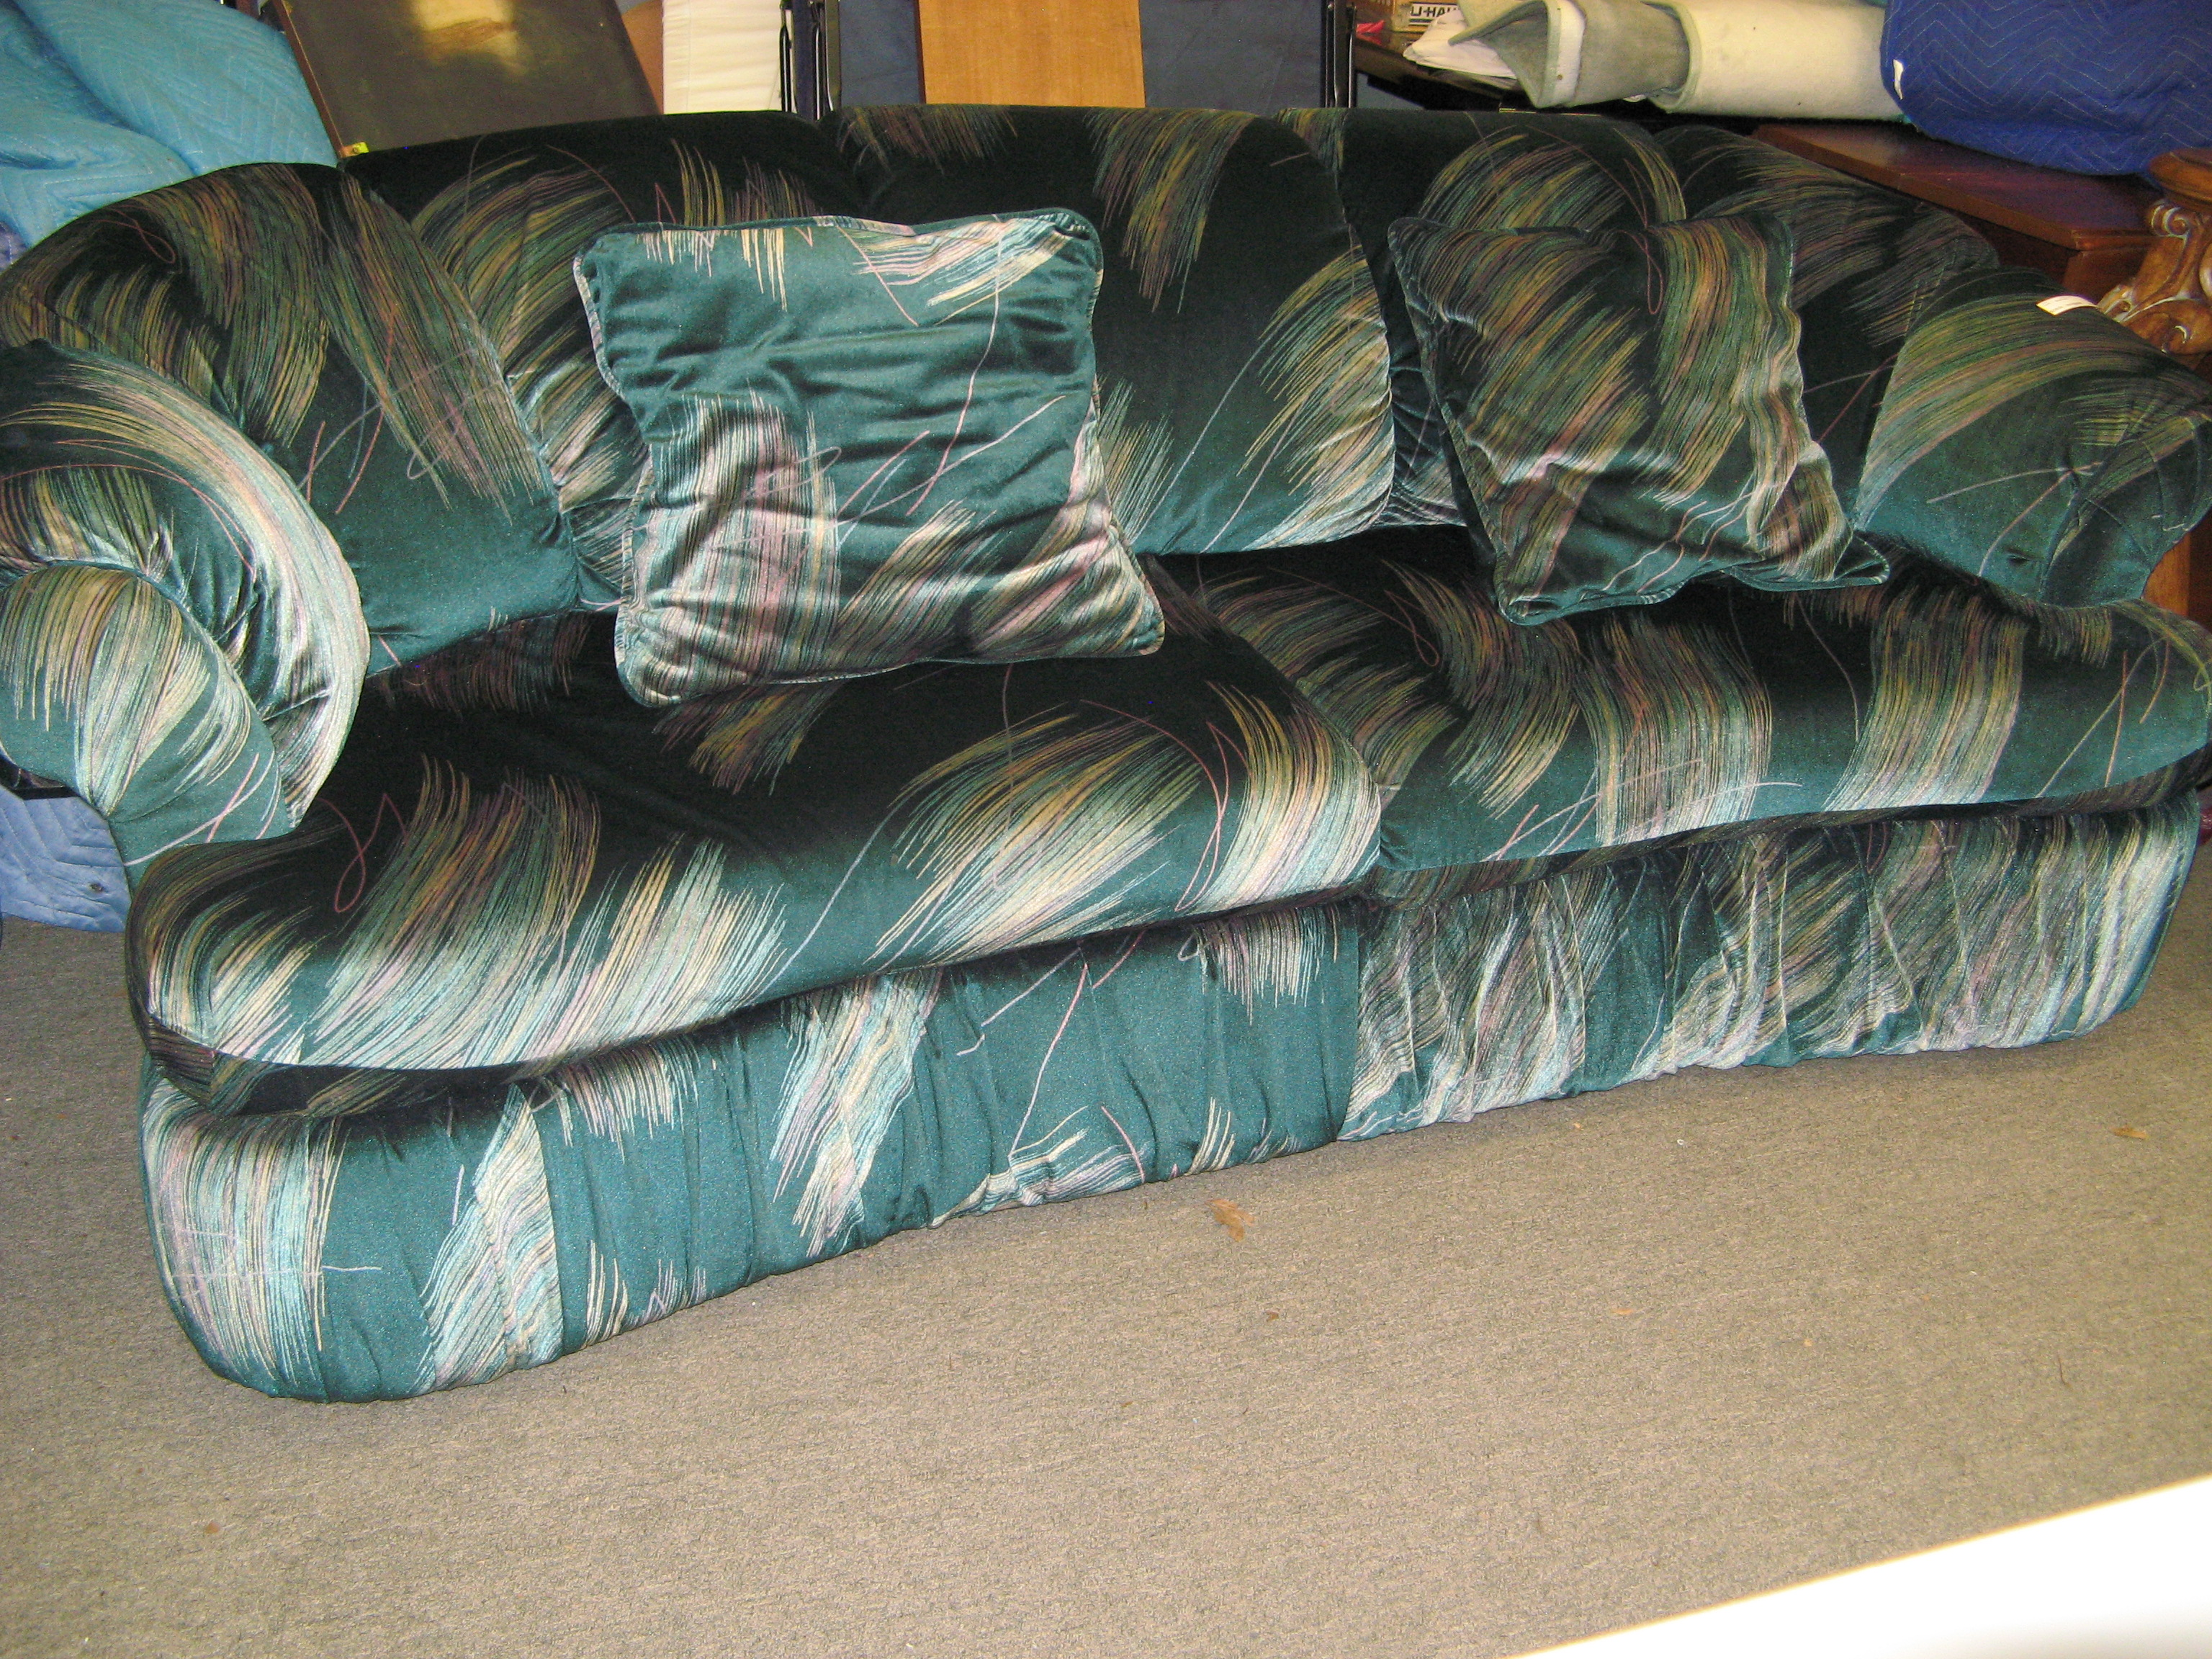 Green Teal Sofa with Abstract Bands of Color